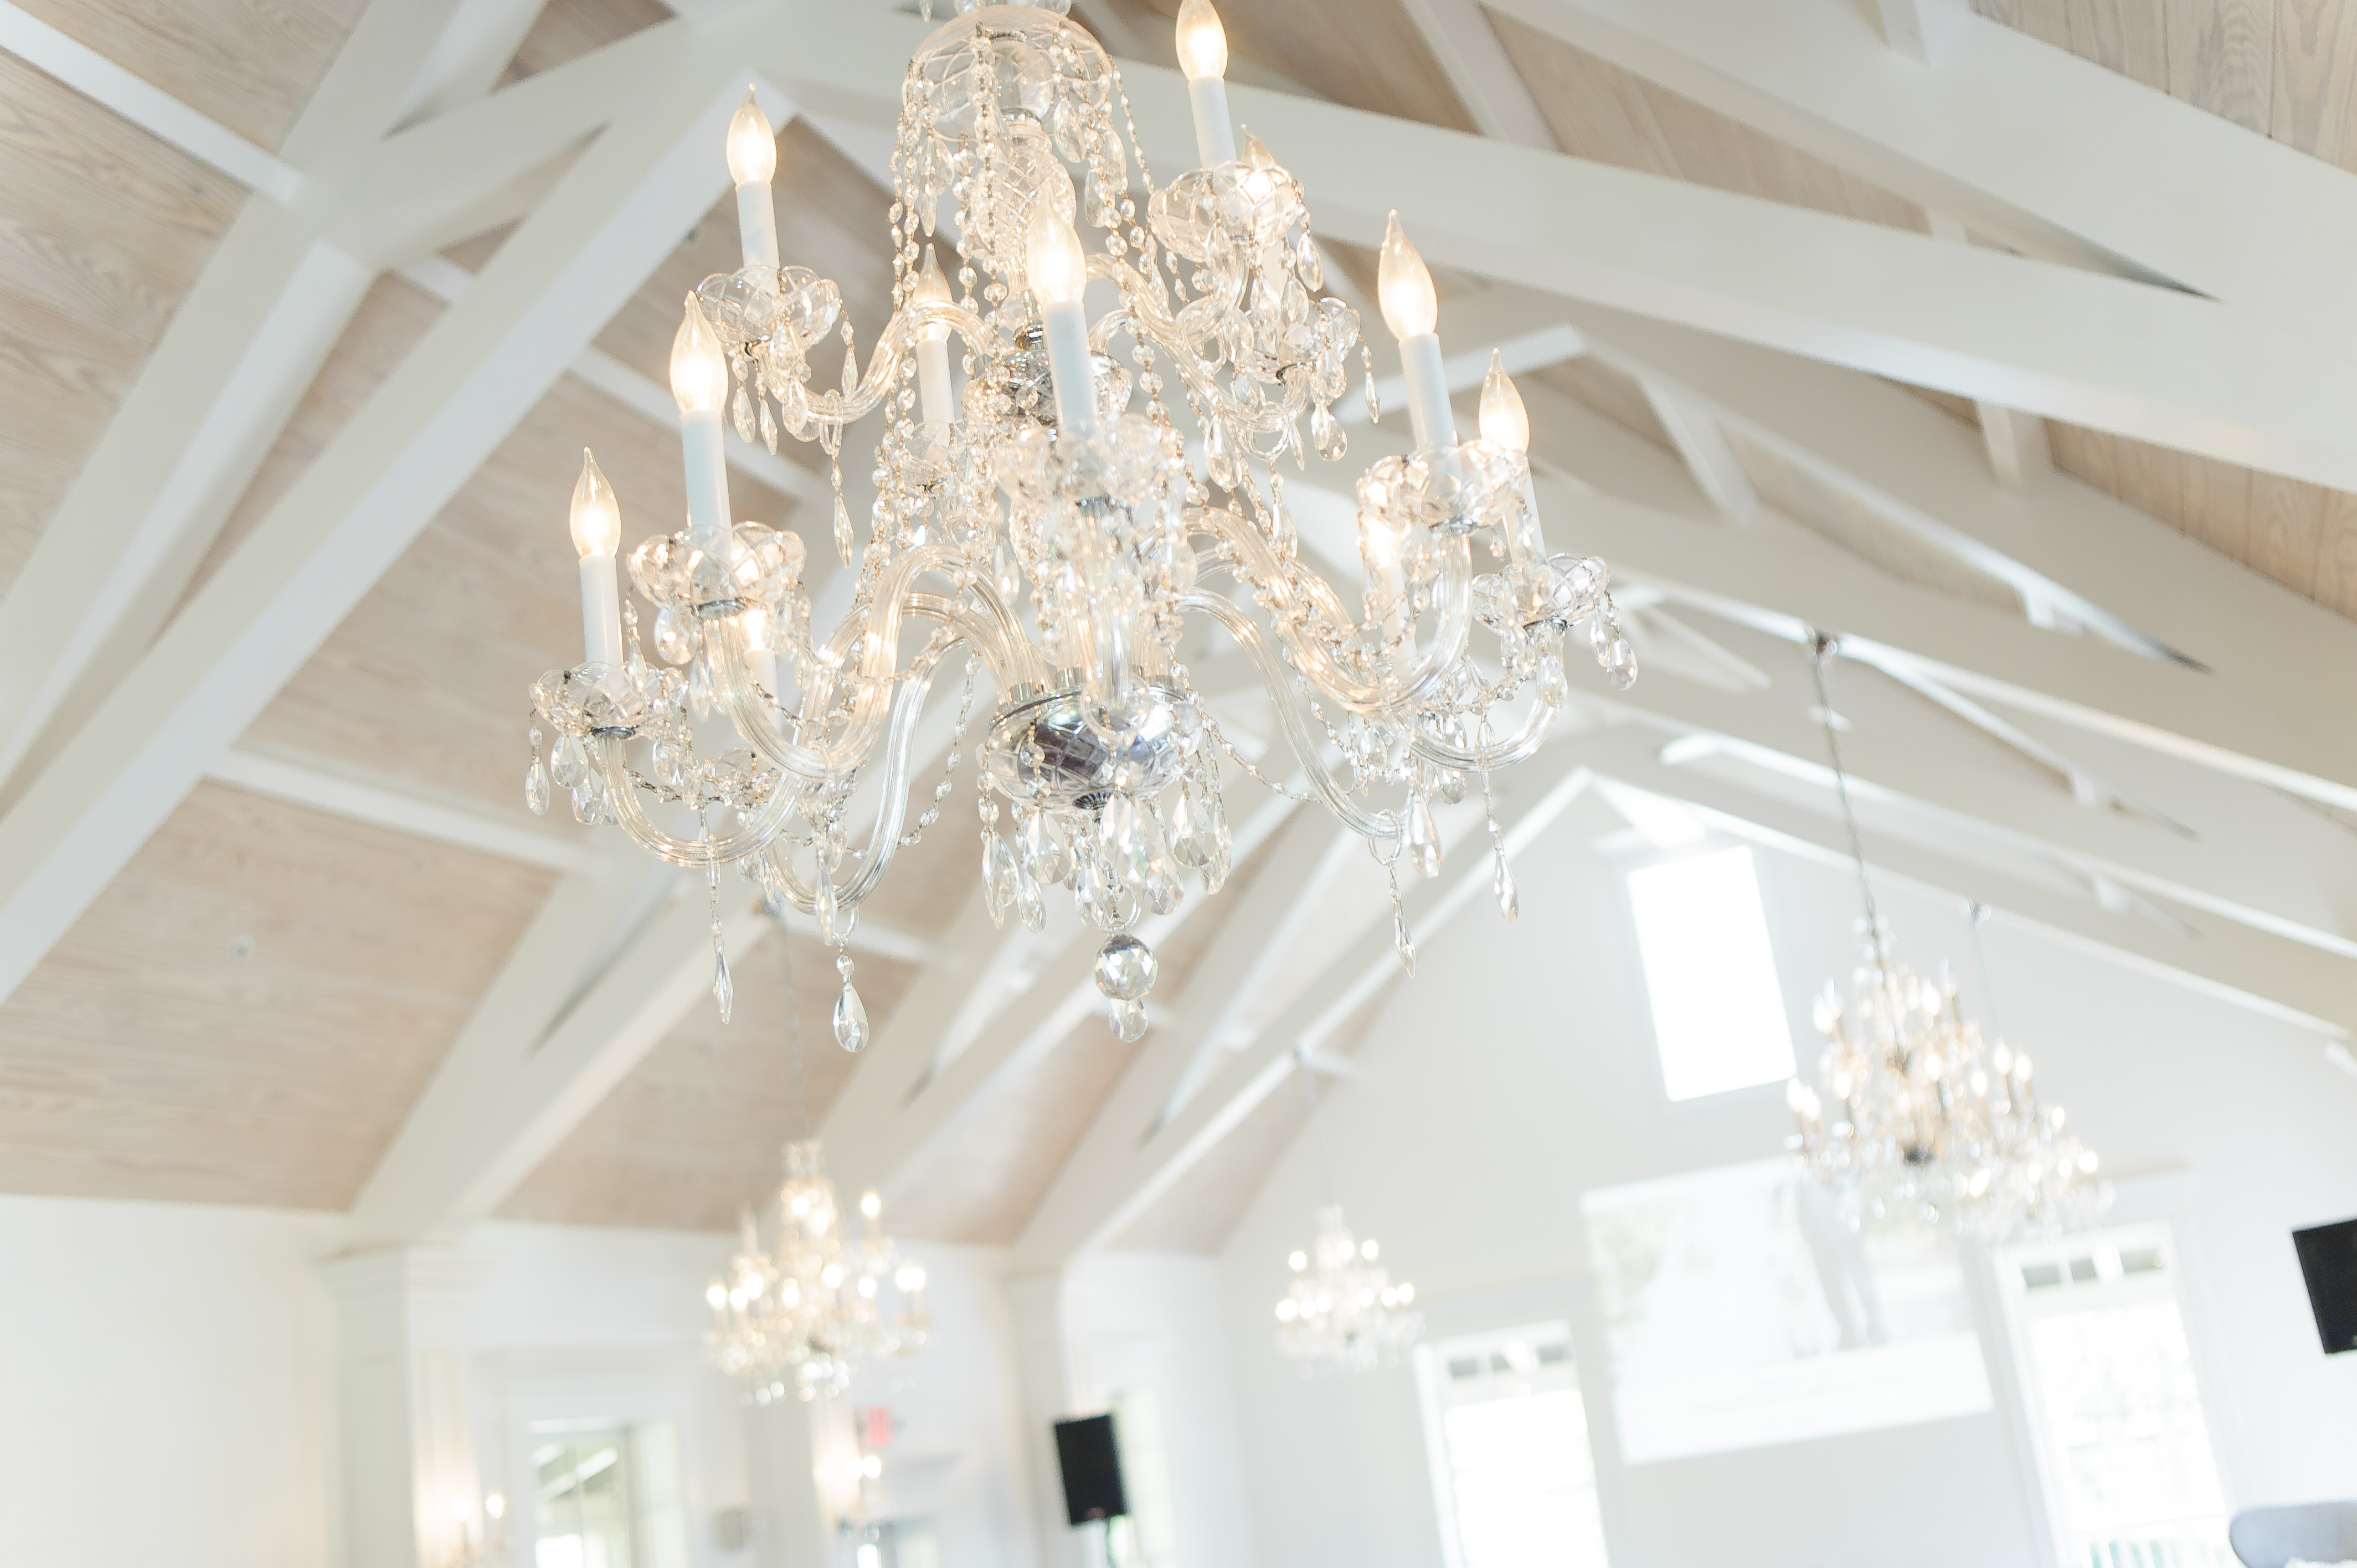 st-augustine-corporate-meeting-event-venue-white-room-villa-blanca-chandeliers